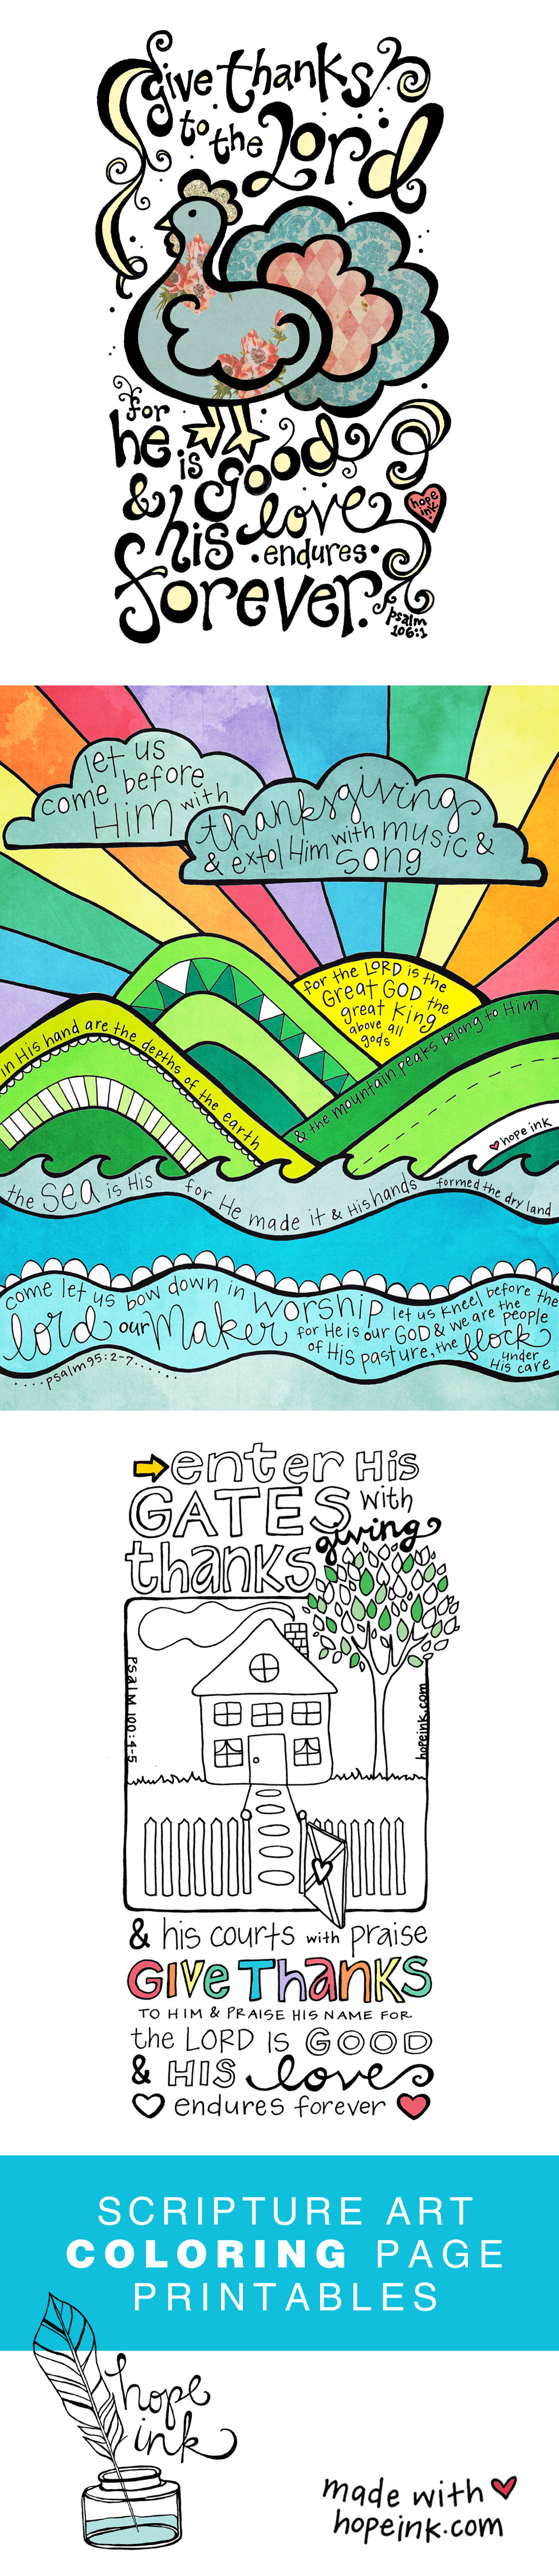 Printable Scripture Art Coloring Sheets For Thanksgiving